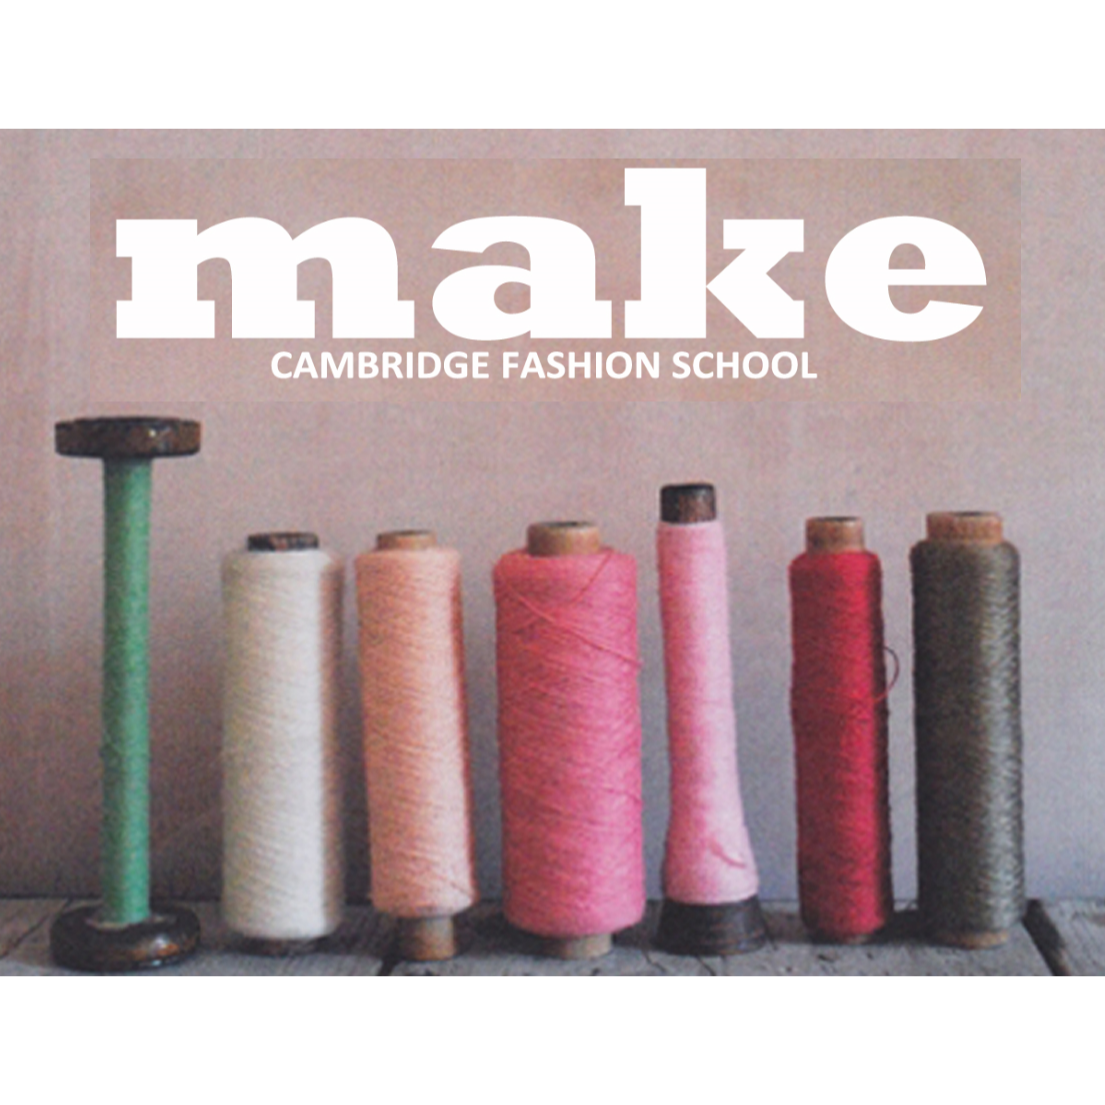 MAKE Cambridge Fashion School